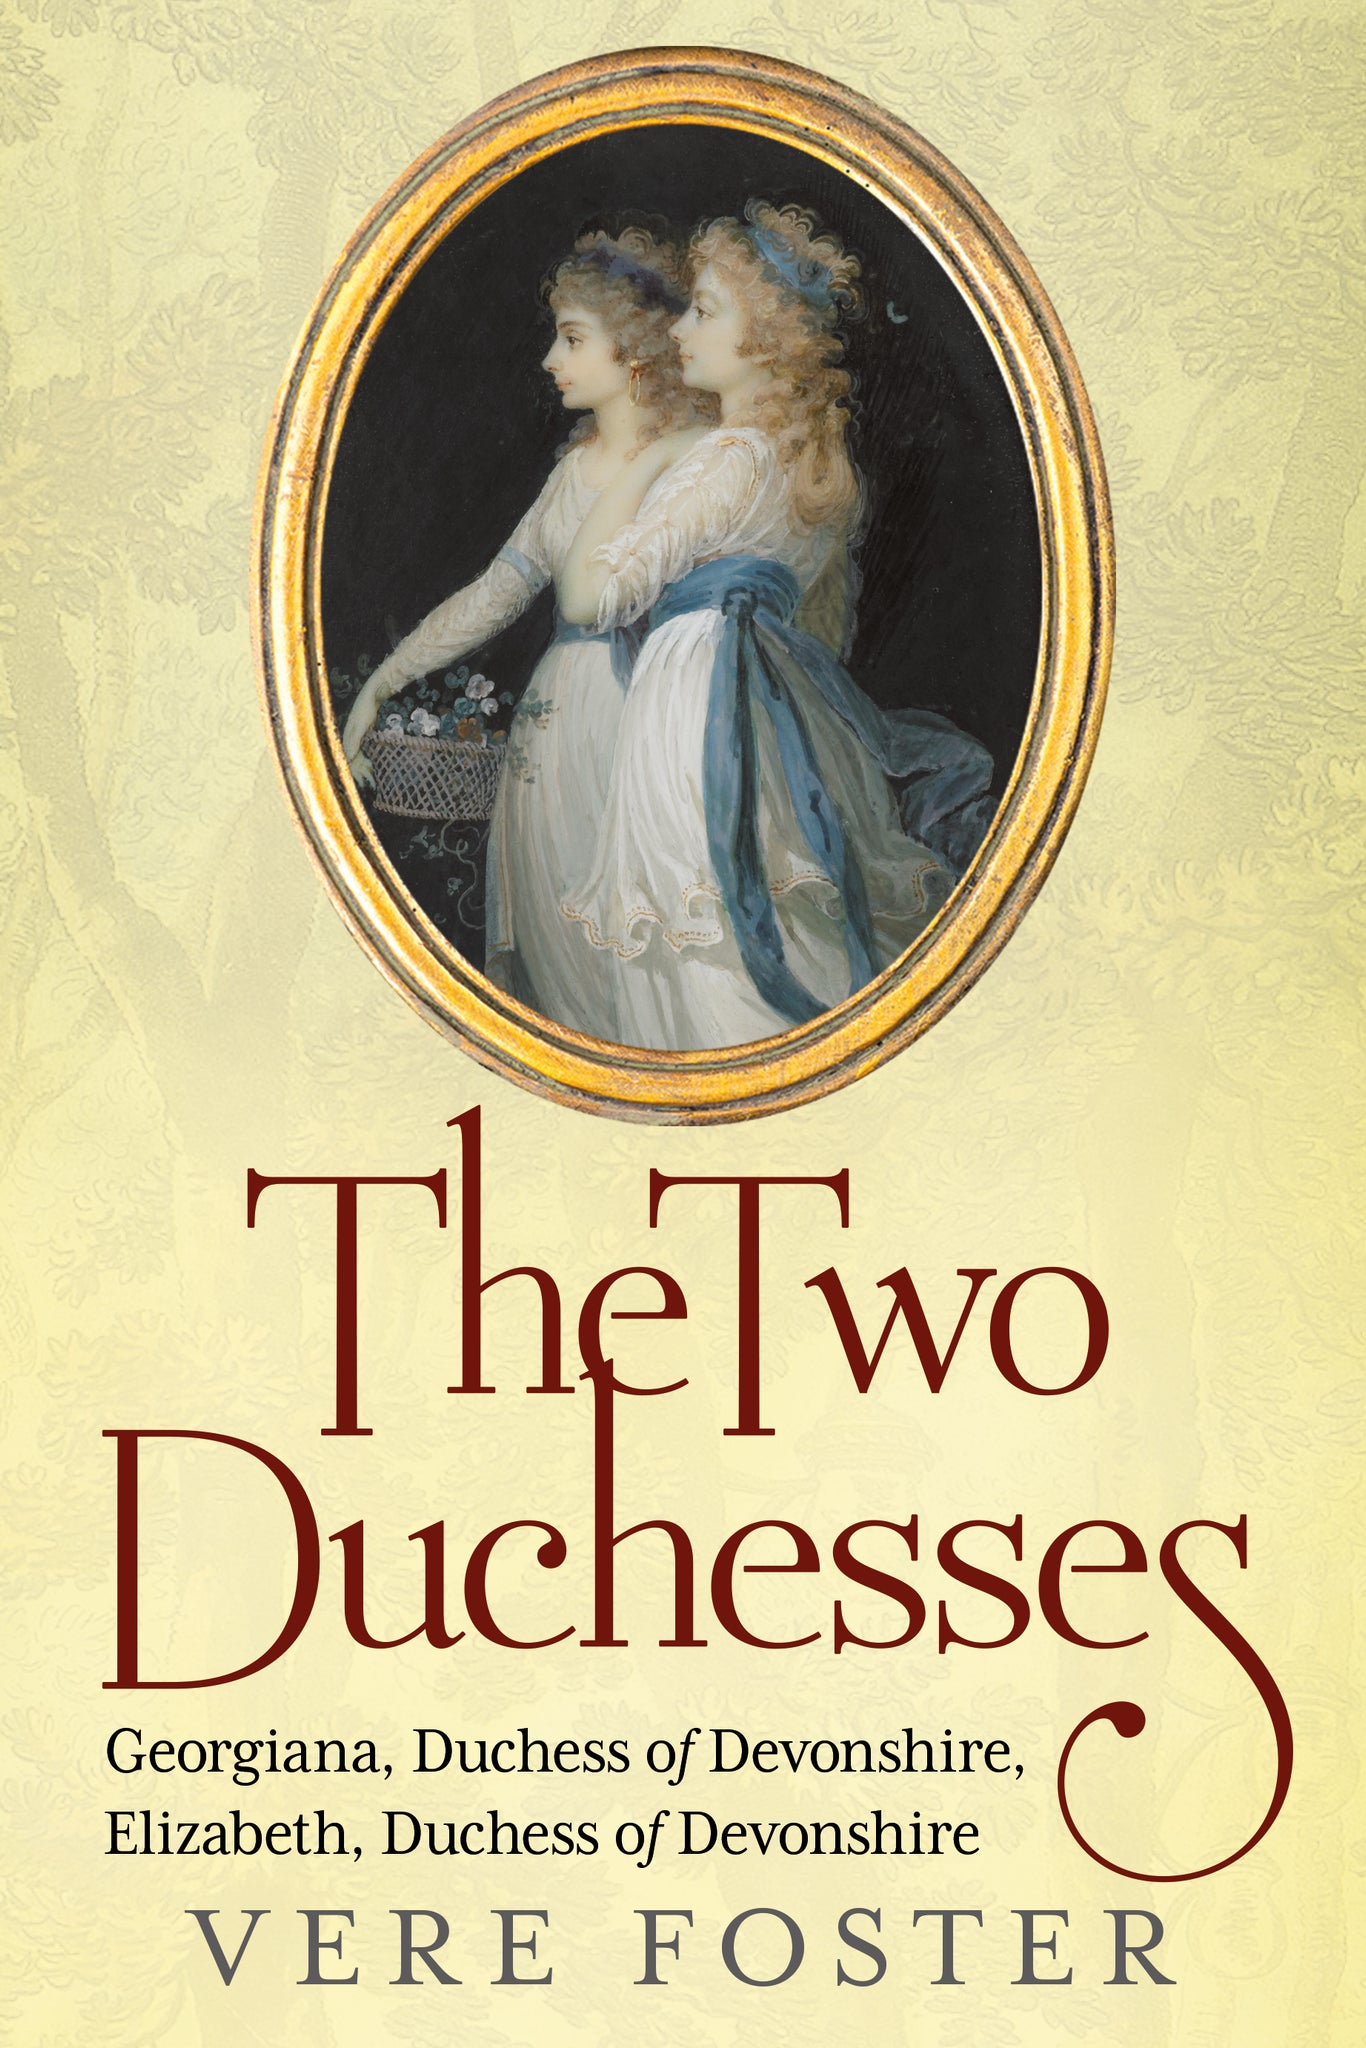 The Two Duchesses: Georgiana, Duchess of Devonshire, Elizabeth, Duchess of Devonshire